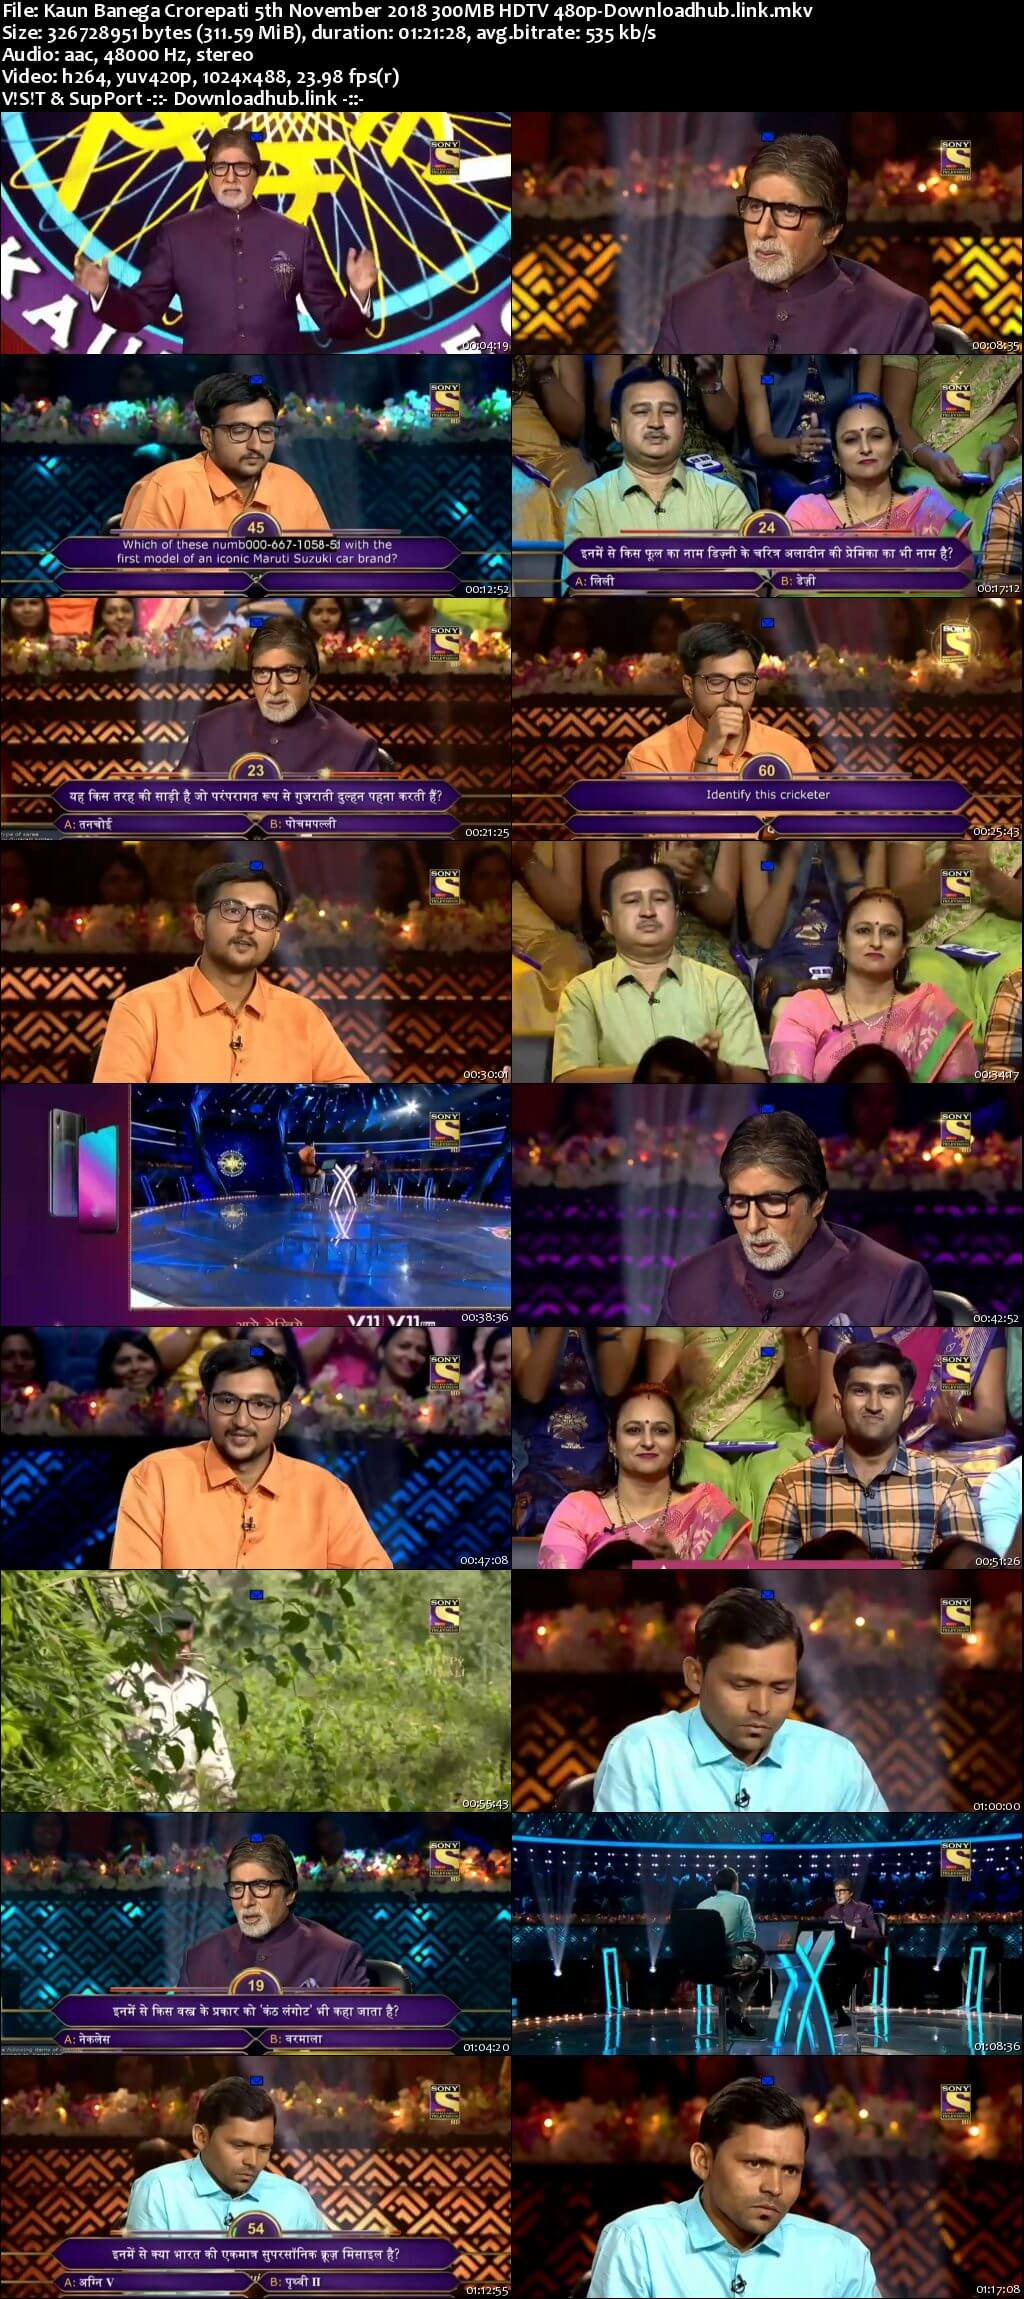 Kaun Banega Crorepati 5th November 2018 300MB HDTV 480p